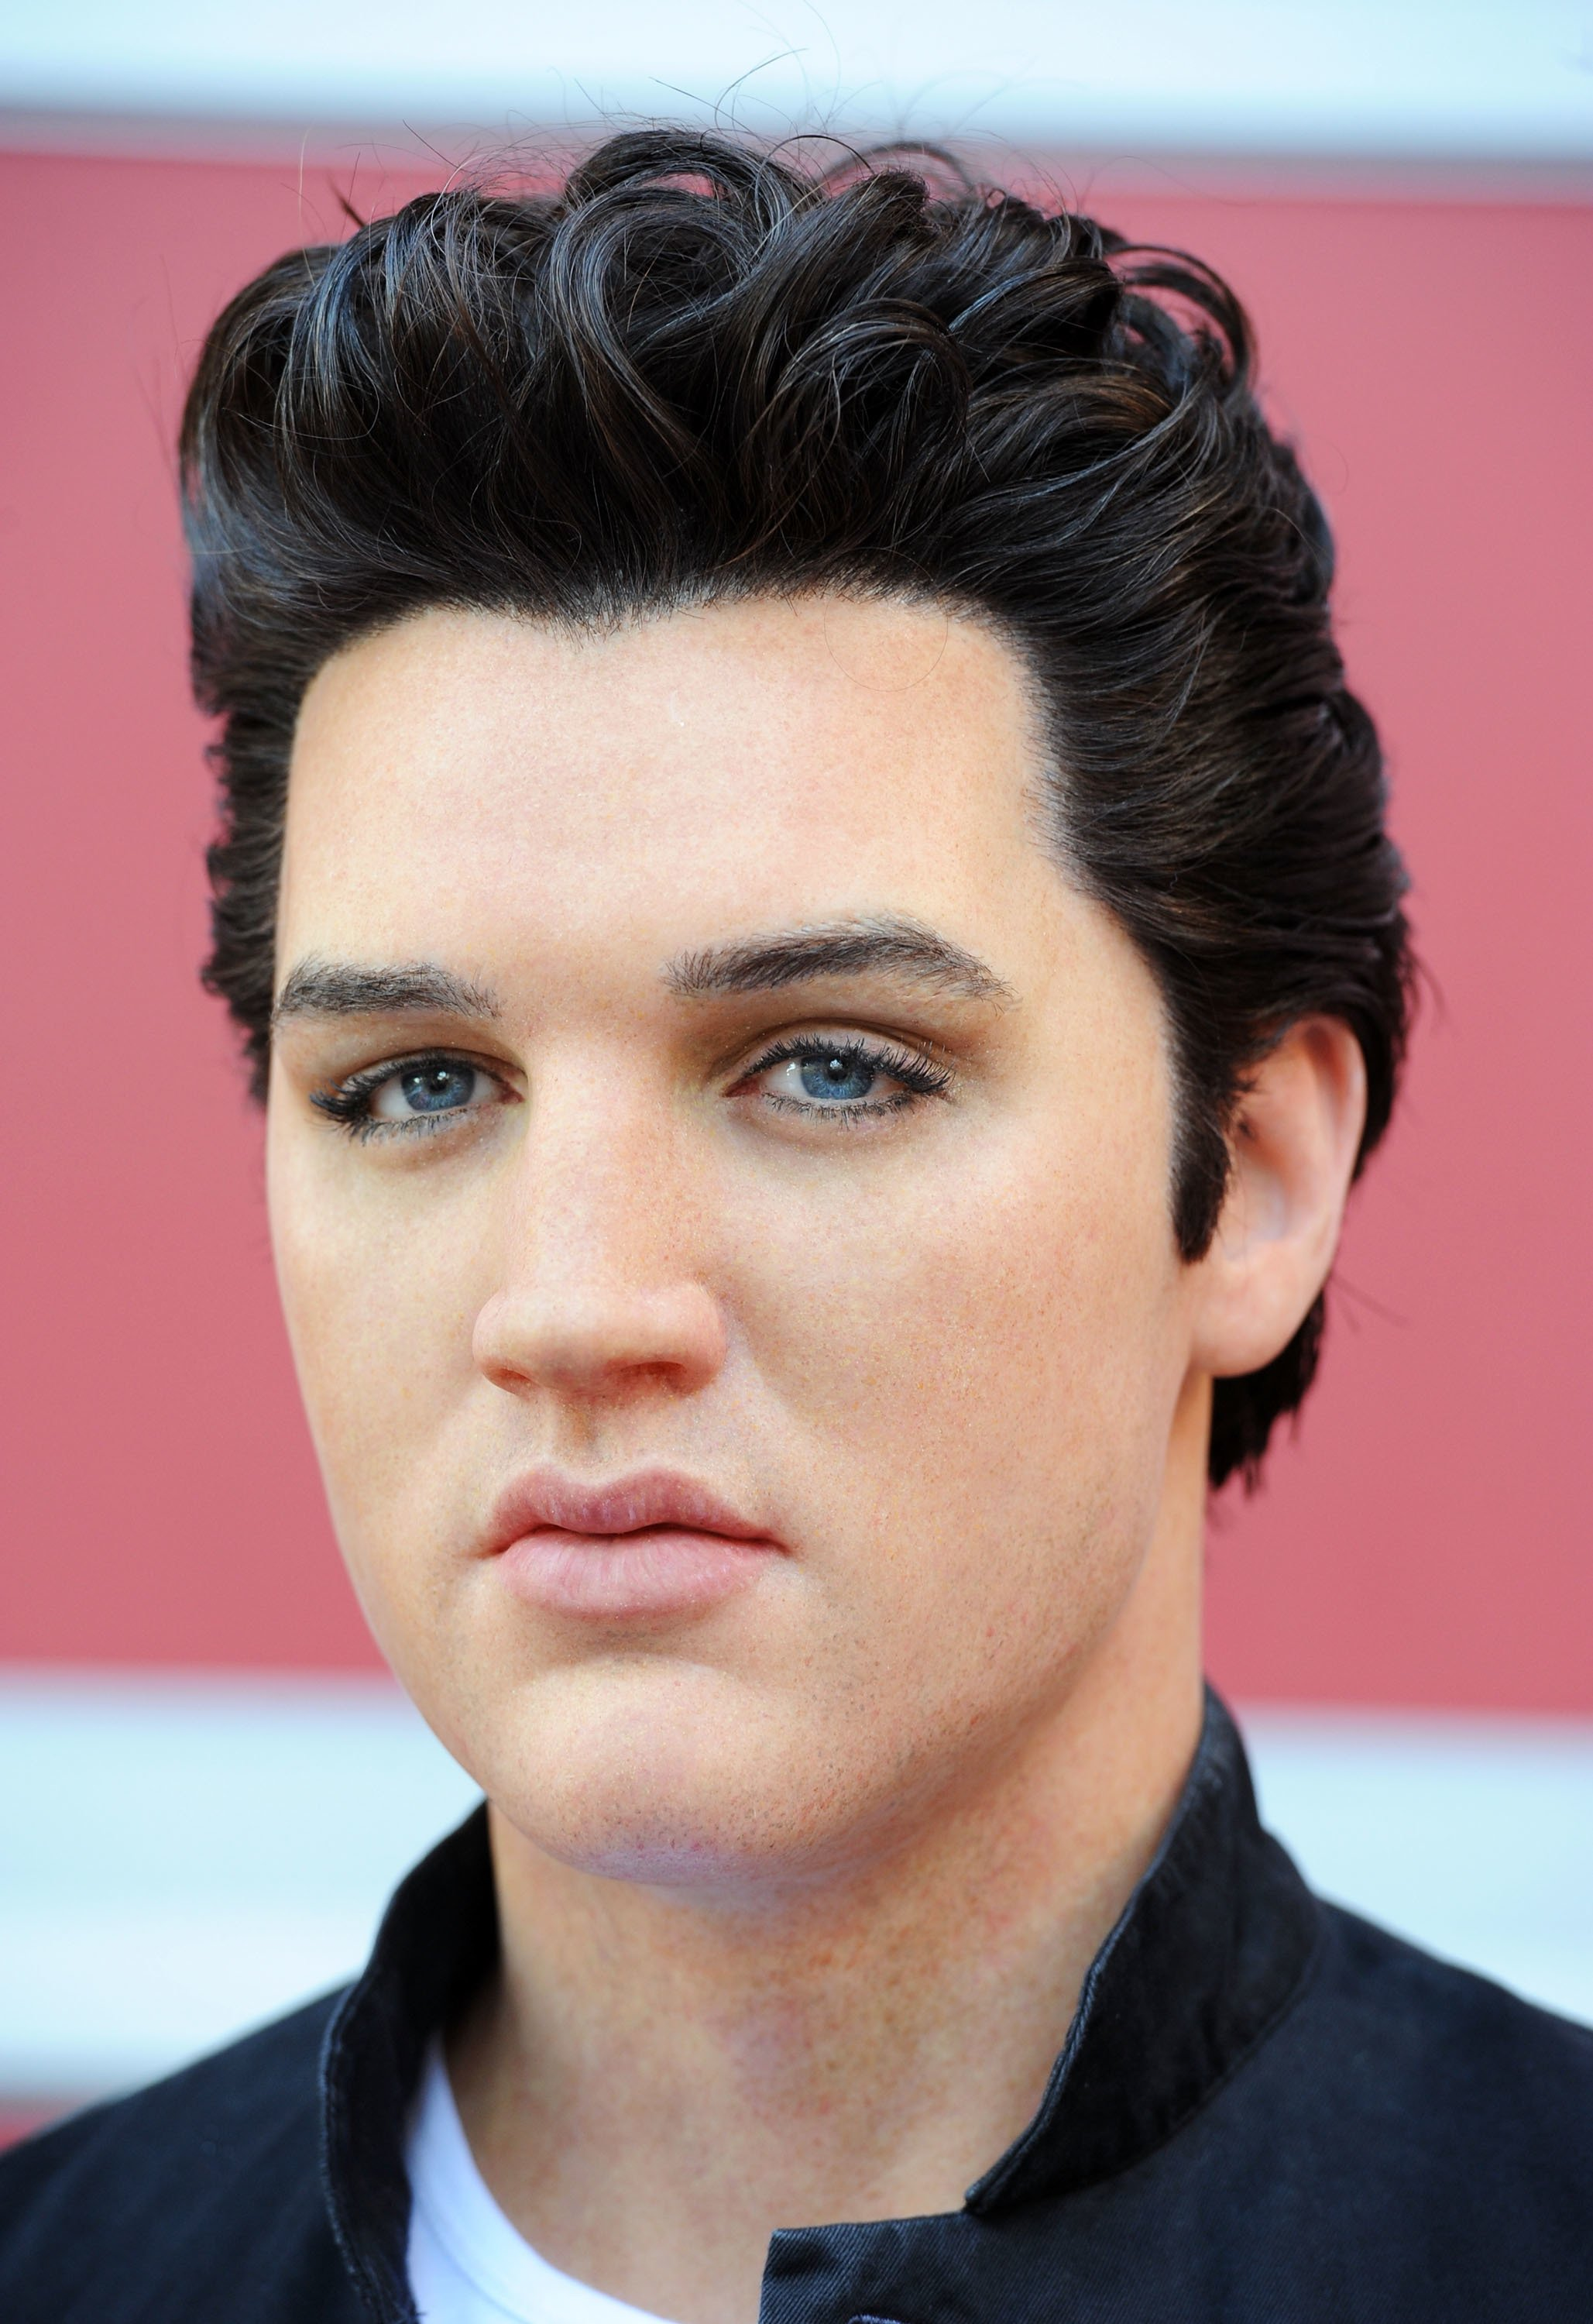 Madame Tussauds Hollywood unveils its first-ever Elvis Presley wax figure. | Source: Getty Images